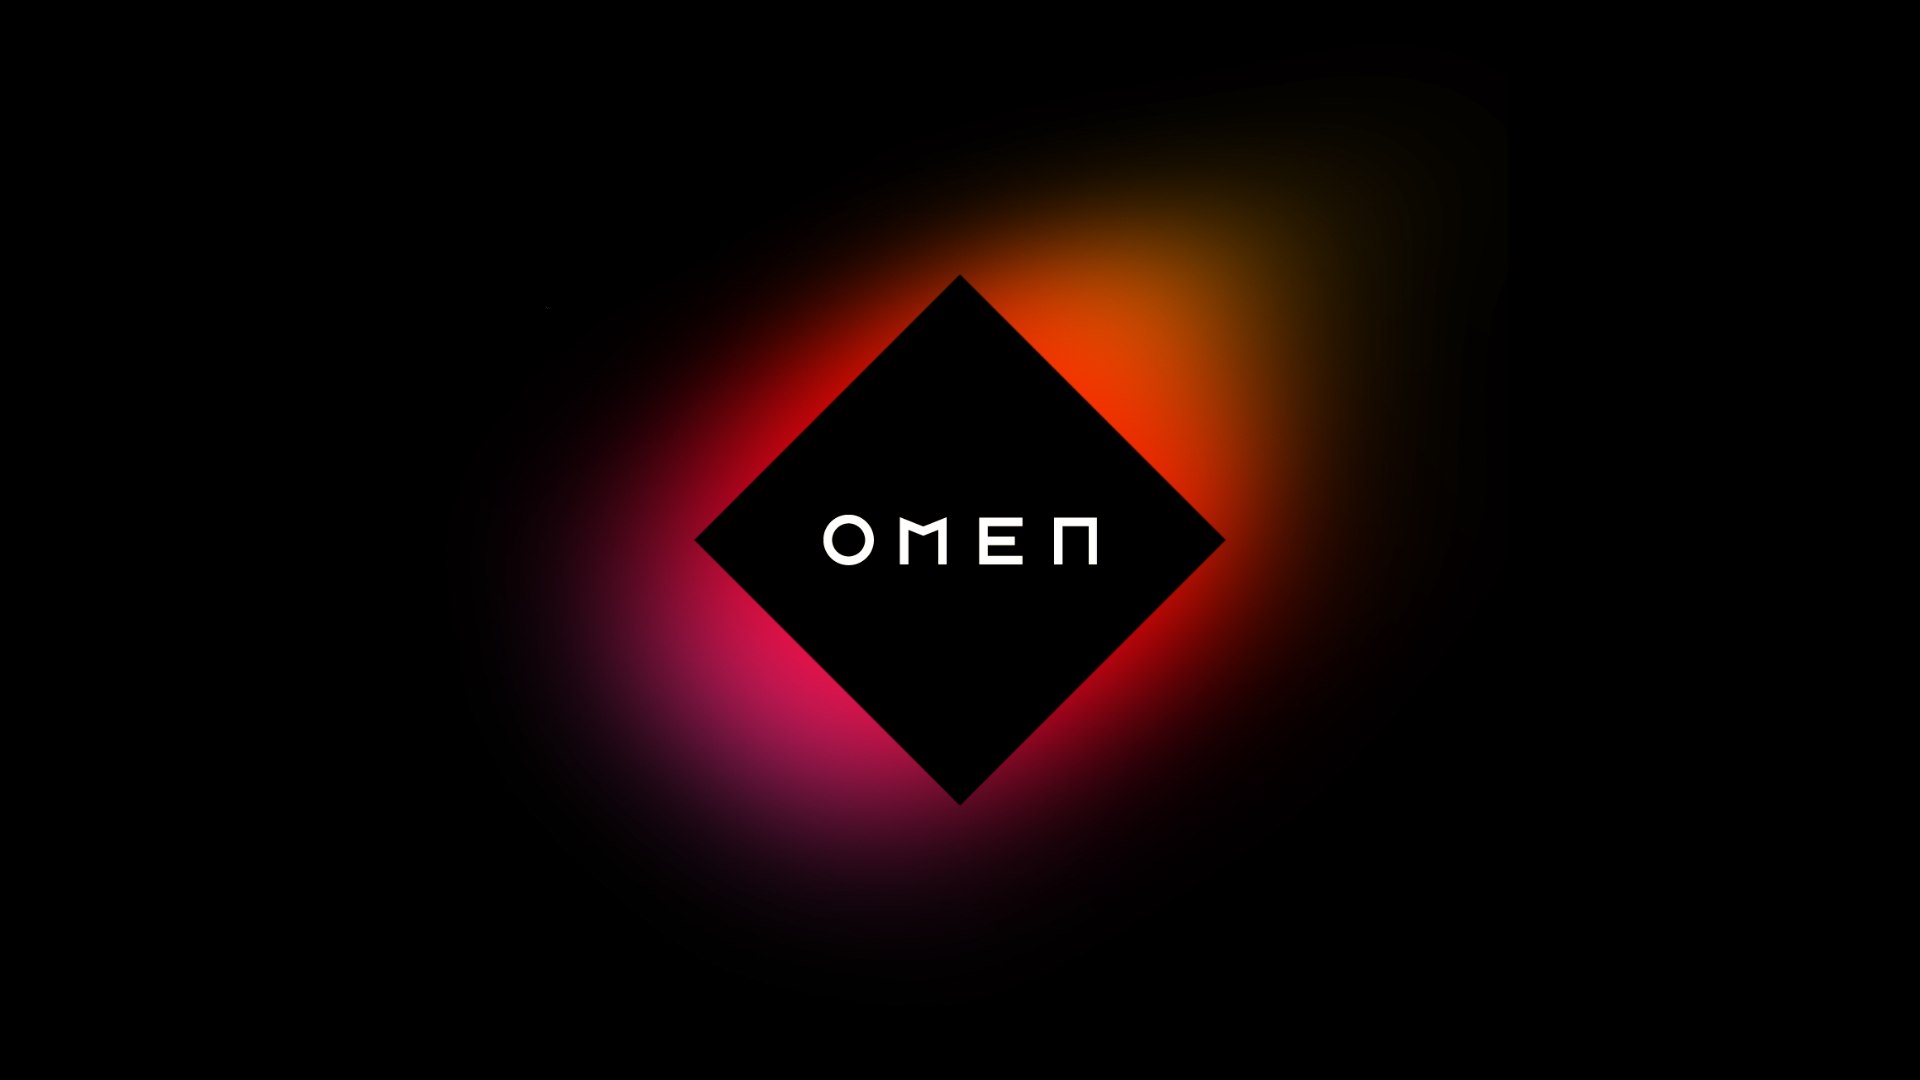 Omen Gaming Wallpapers Top Free Omen Gaming Backgrounds Wallpaperaccess